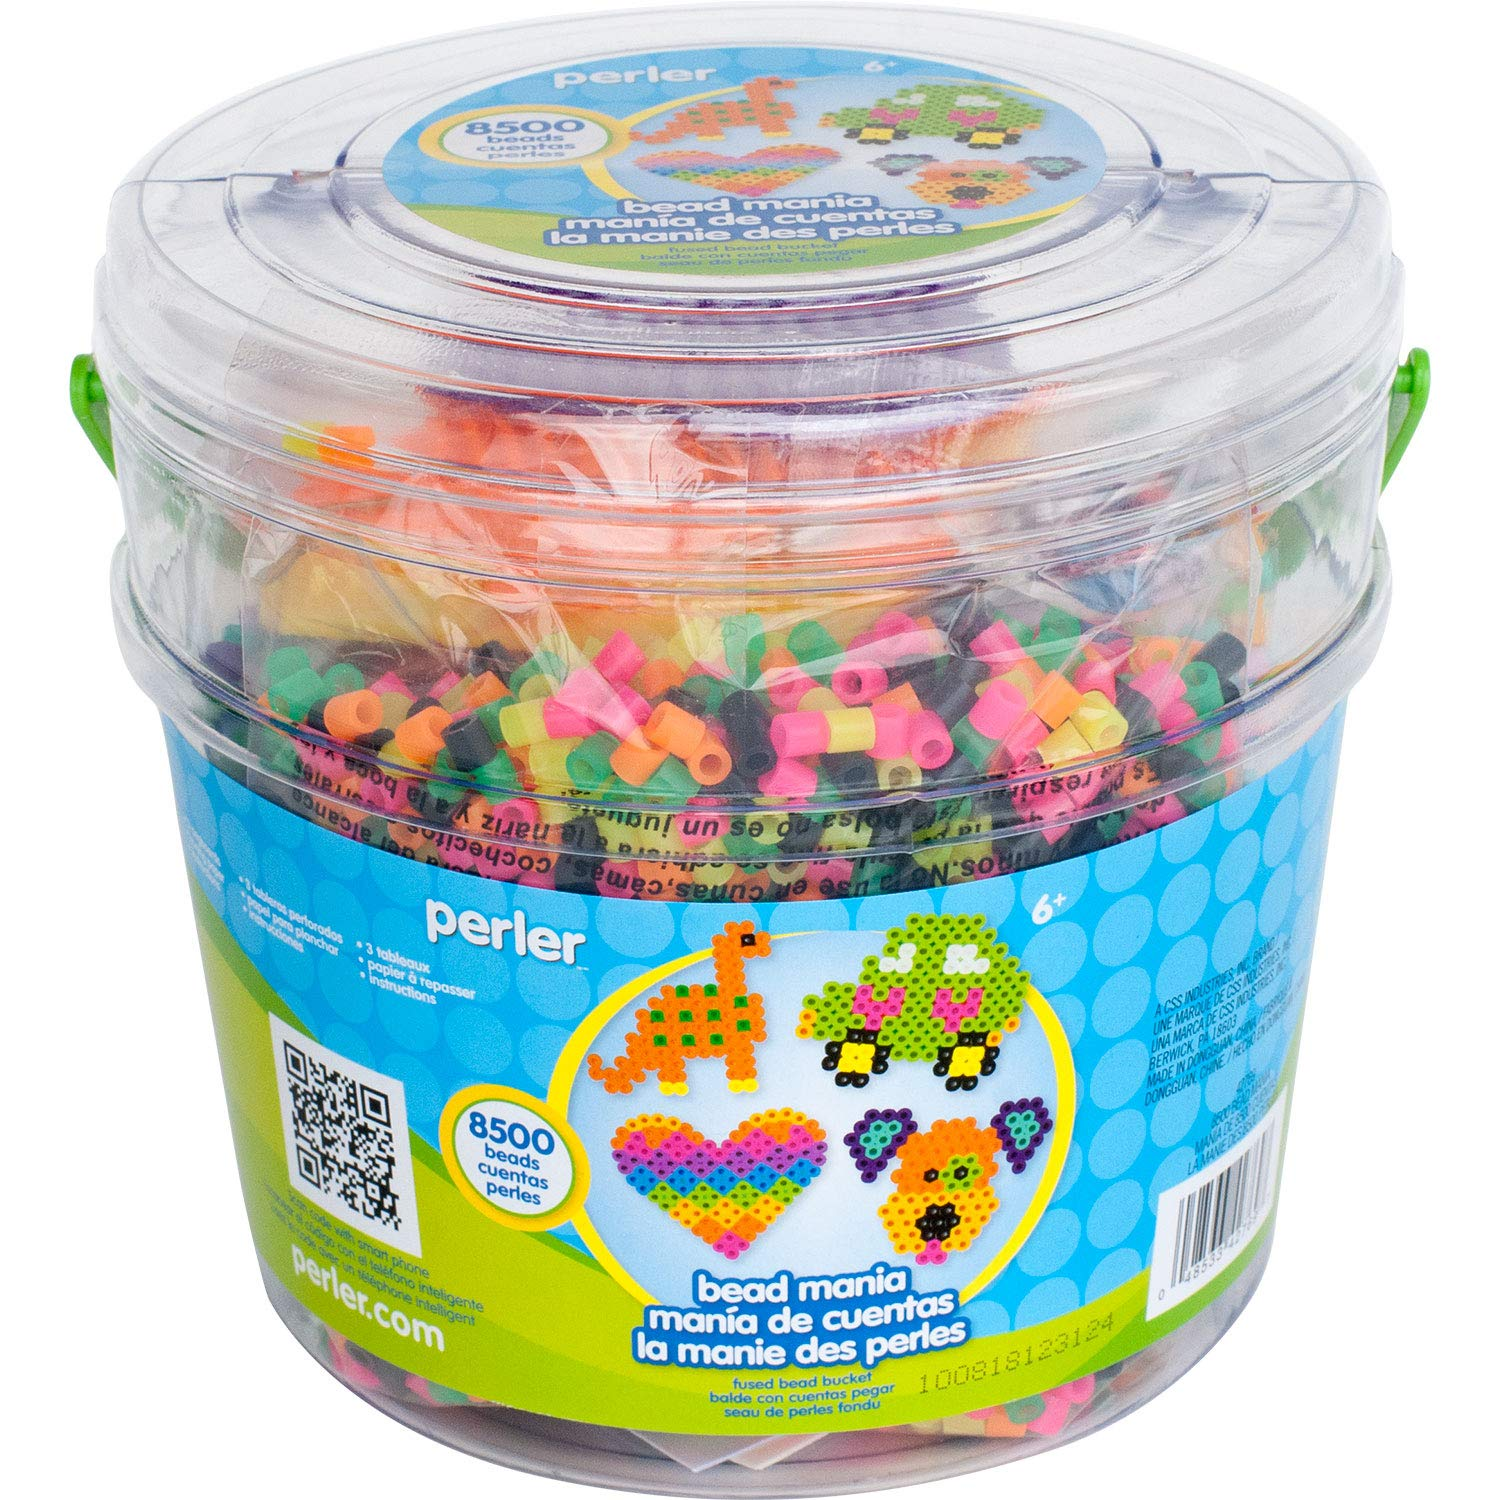 Perler Beads Fuse Bead Activity Bucket for Arts and Crafts, 8500 Beads by Perler